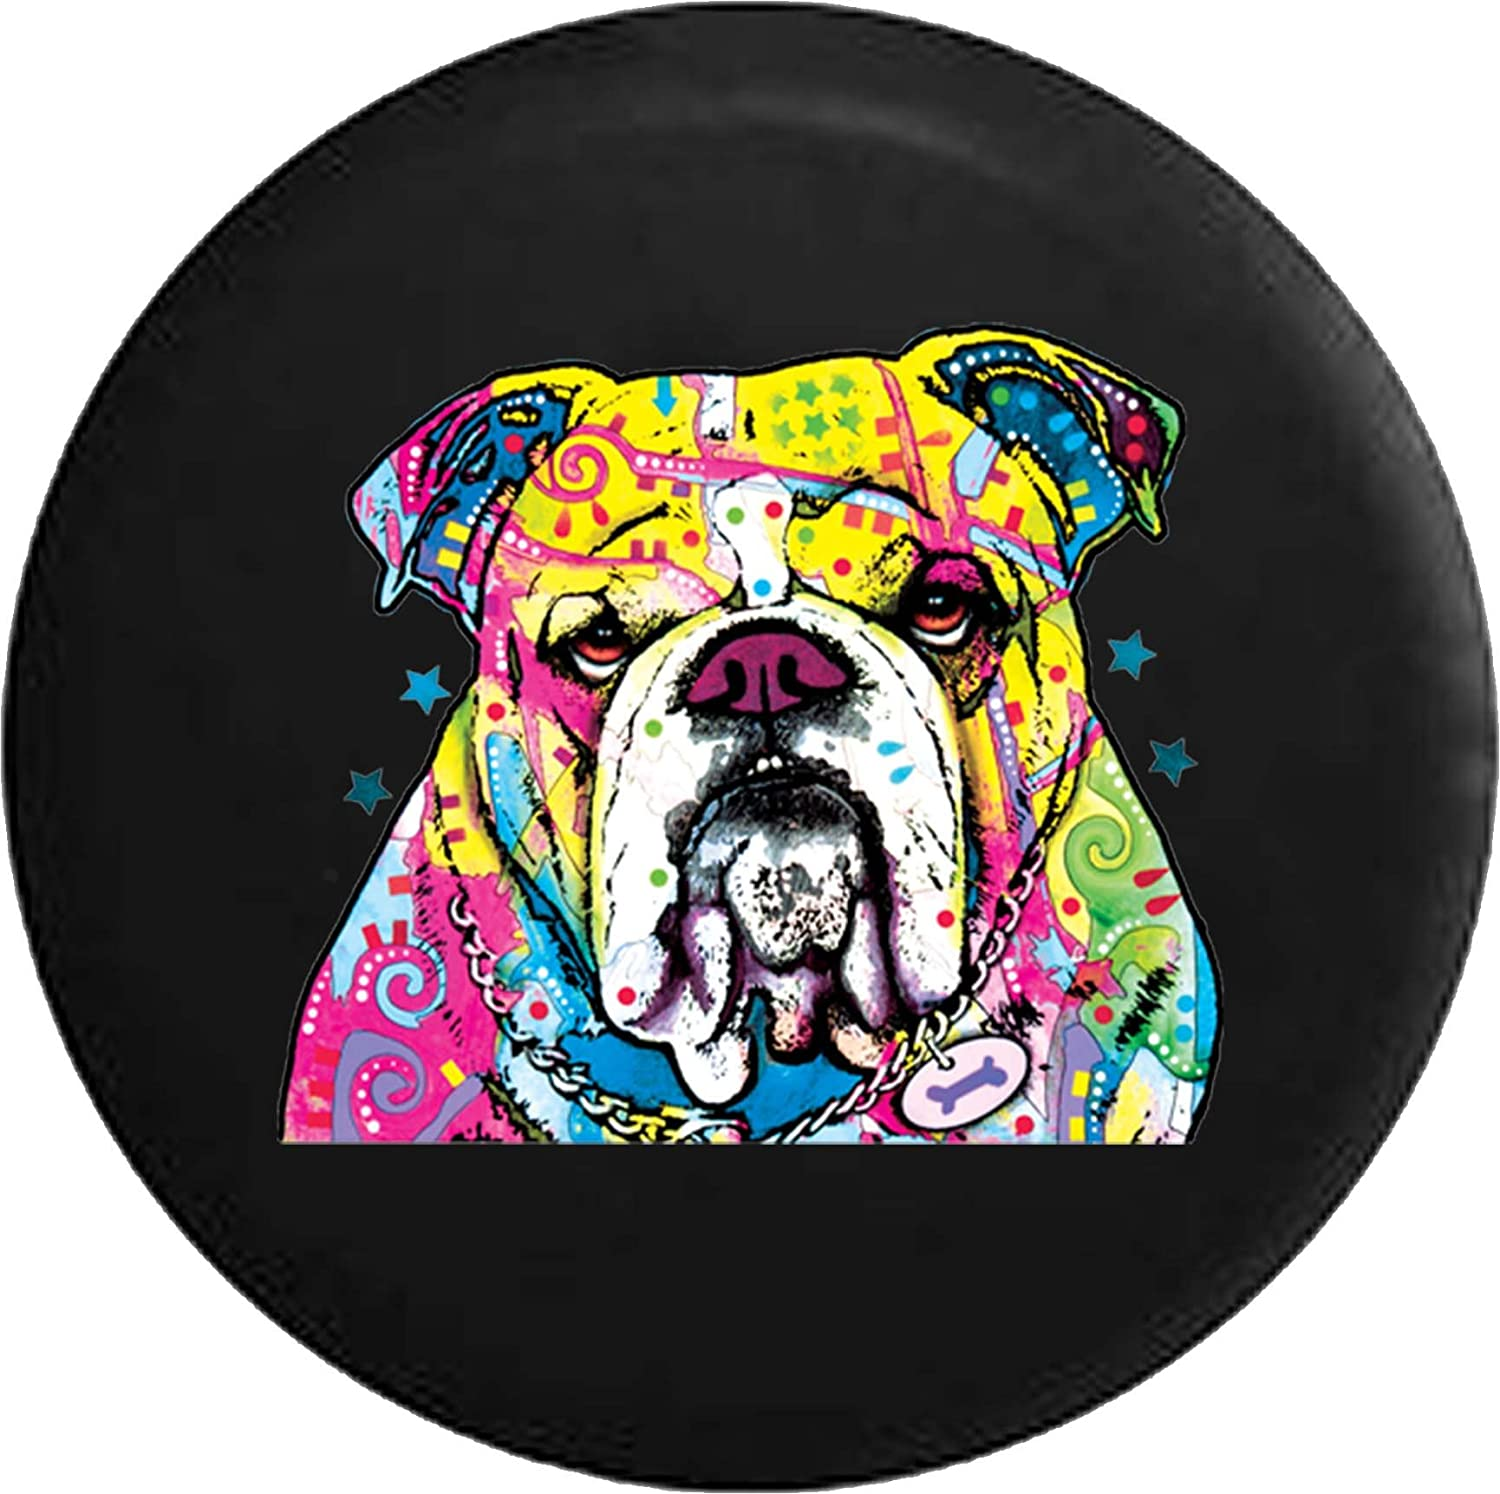 556 Gear English Bulldog Neon Artistic Dog Jeep RV Spare Tire Cover Black 33 in